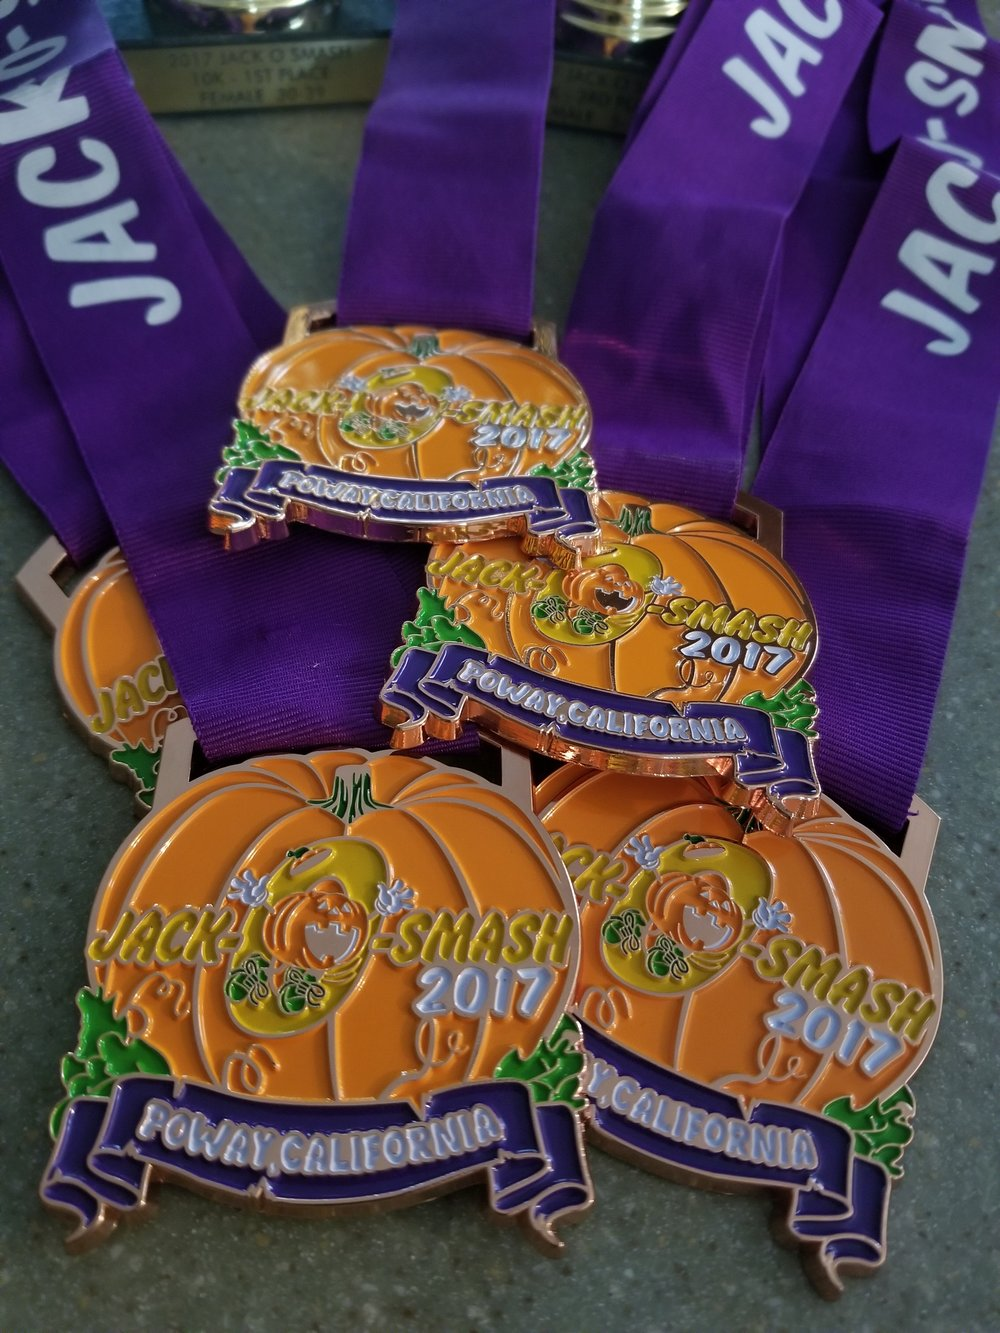 2017 Jack O Smash Finisher Medals for the 10K and 5K racers!